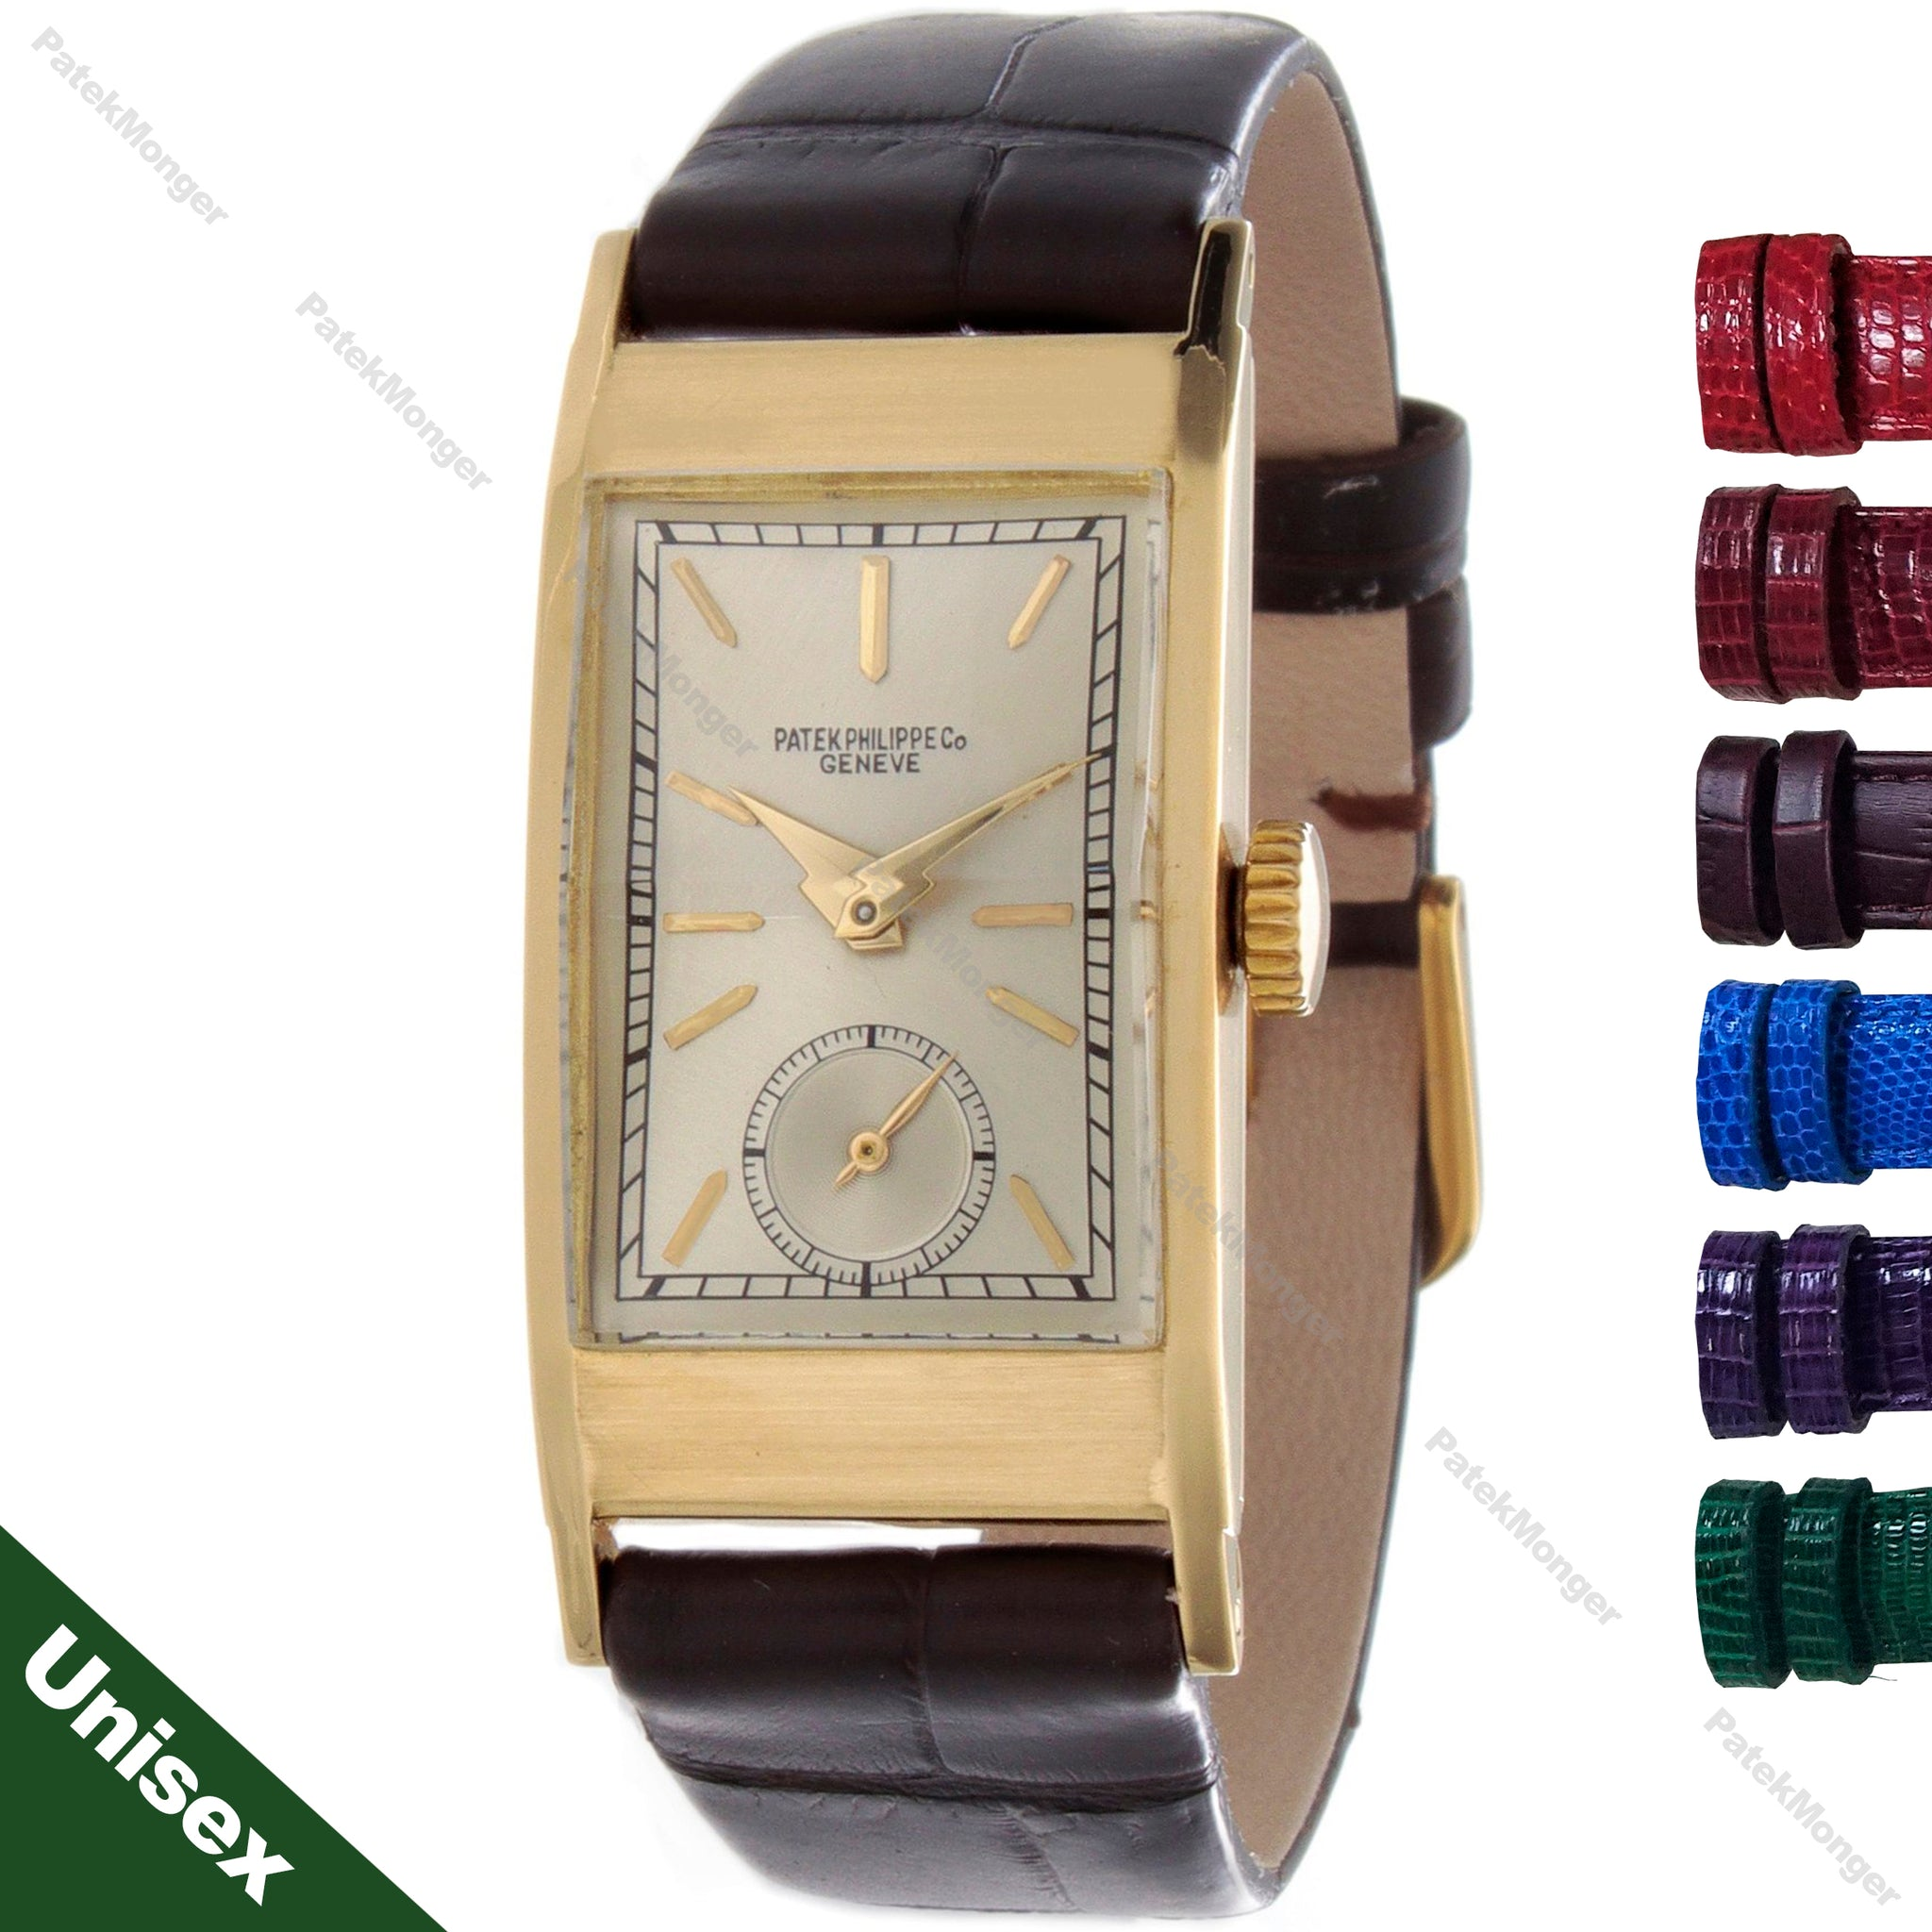 Patek Philippe 425J Art Deco Watch